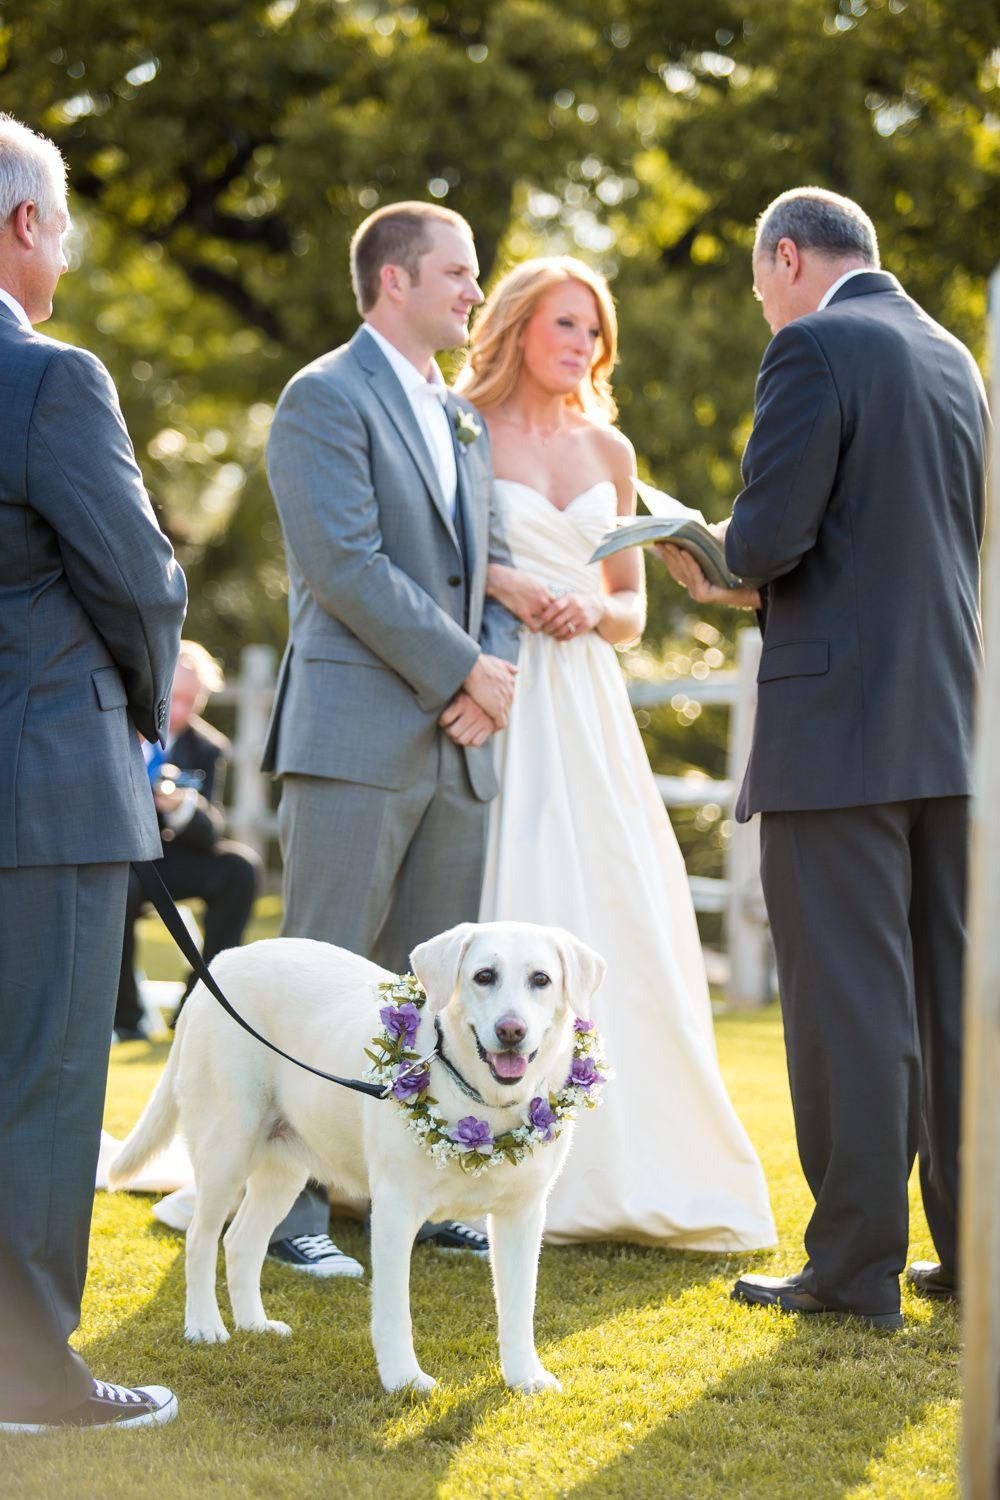 Beach wedding in texas  Wedding Dog in Horseshoe Bay Texas Ceremony  Puppy Love